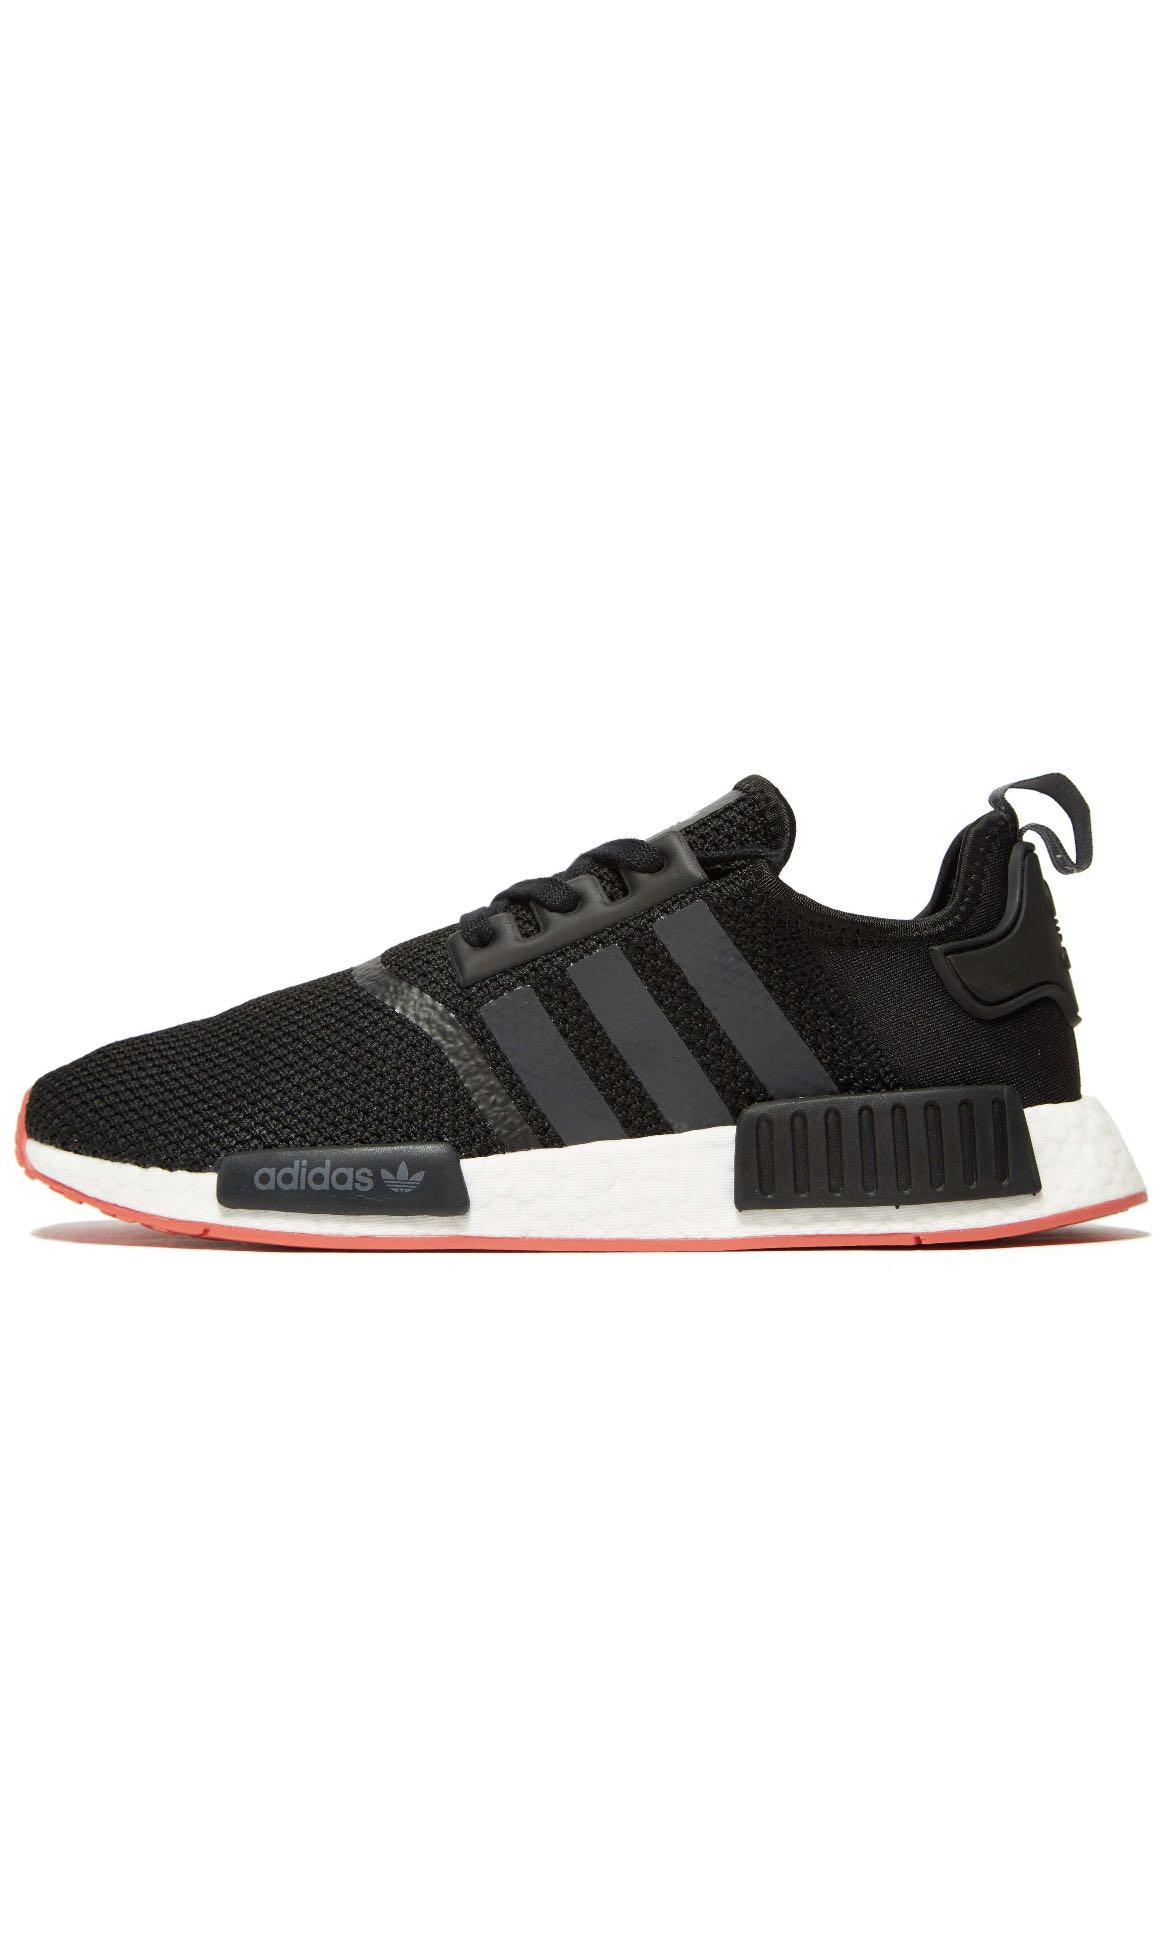 5e8756957d3738 Adidas NMD R1 Tact Black with Orange Sole UK 6-12